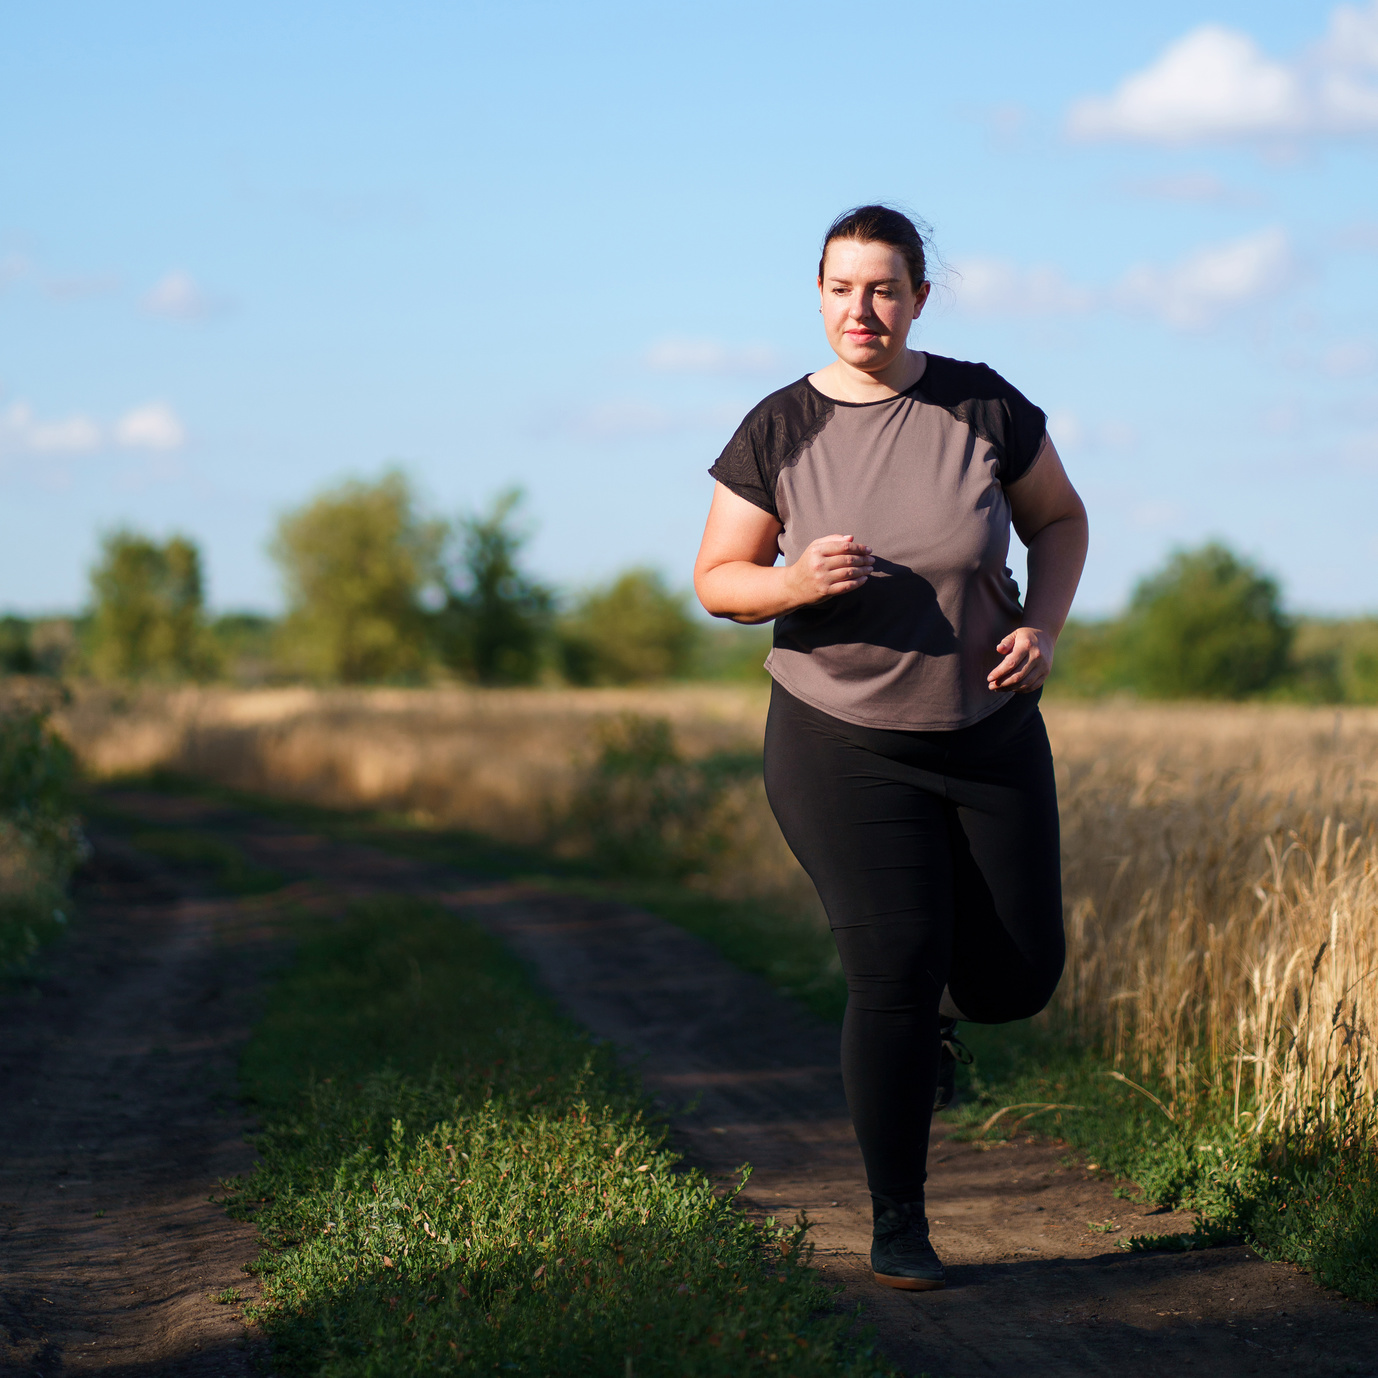 Overweight woman running in countryside